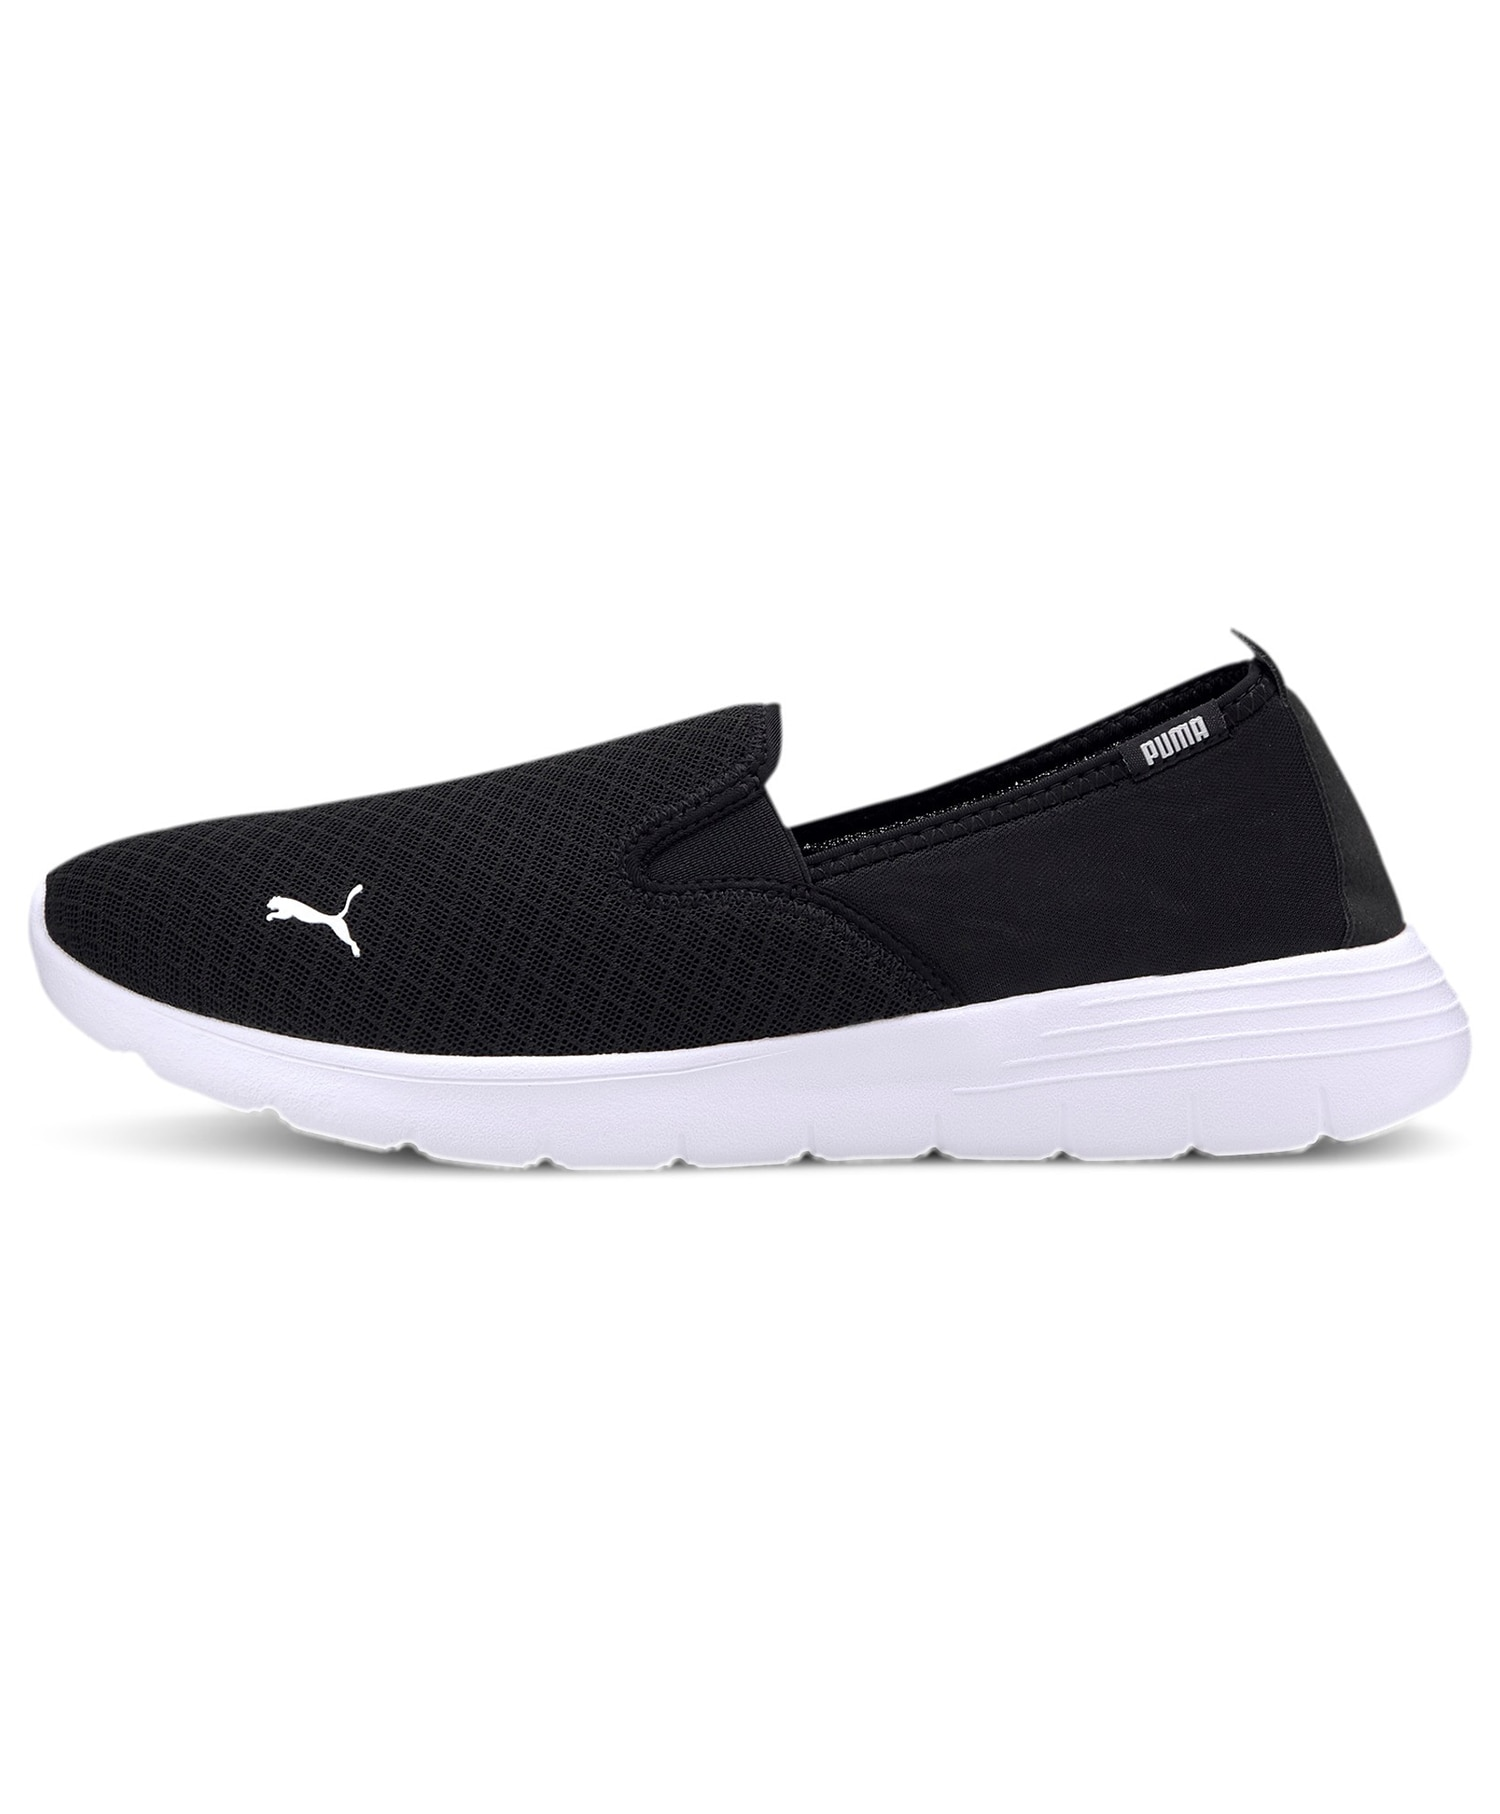 Puma Flex Renew Slipon